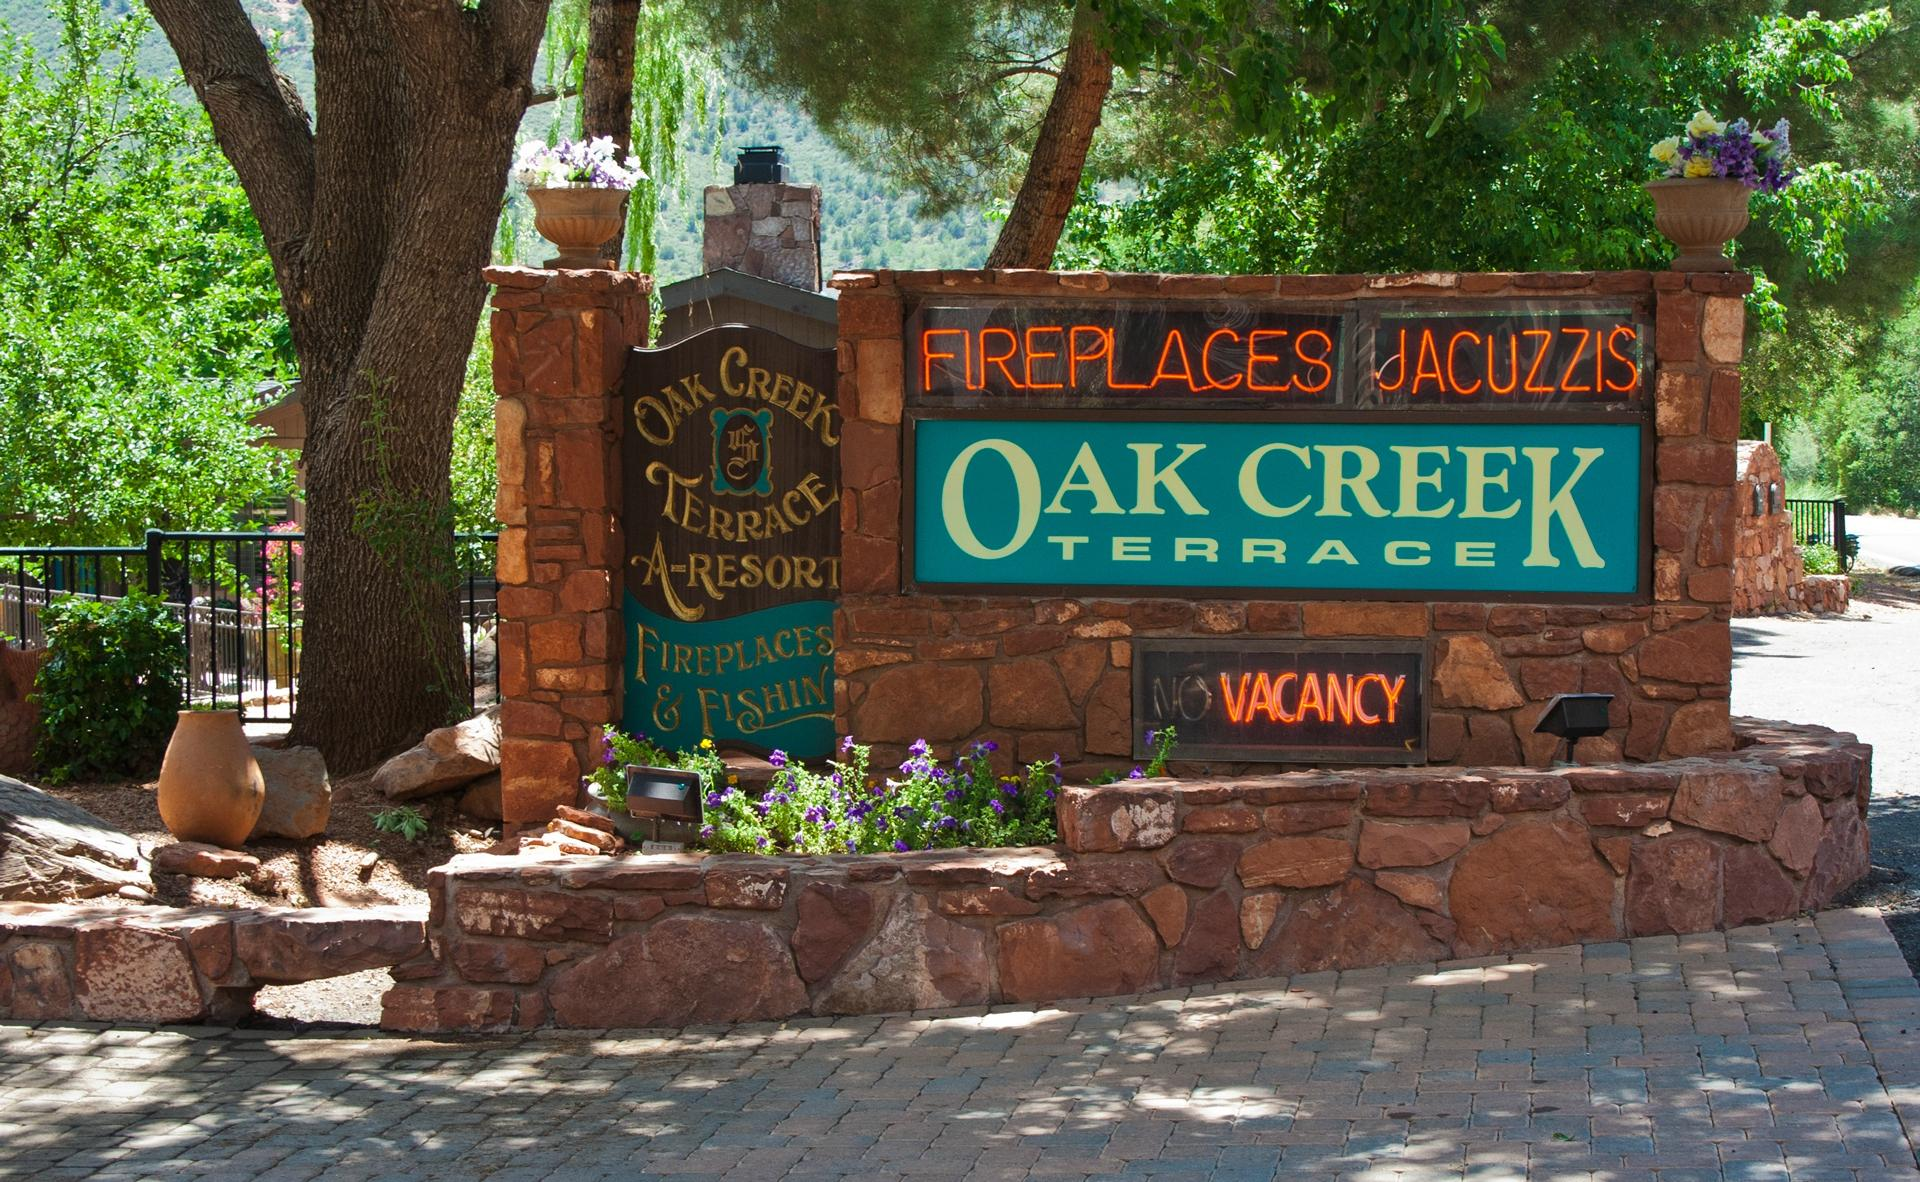 Oak Creek Terrace Resort